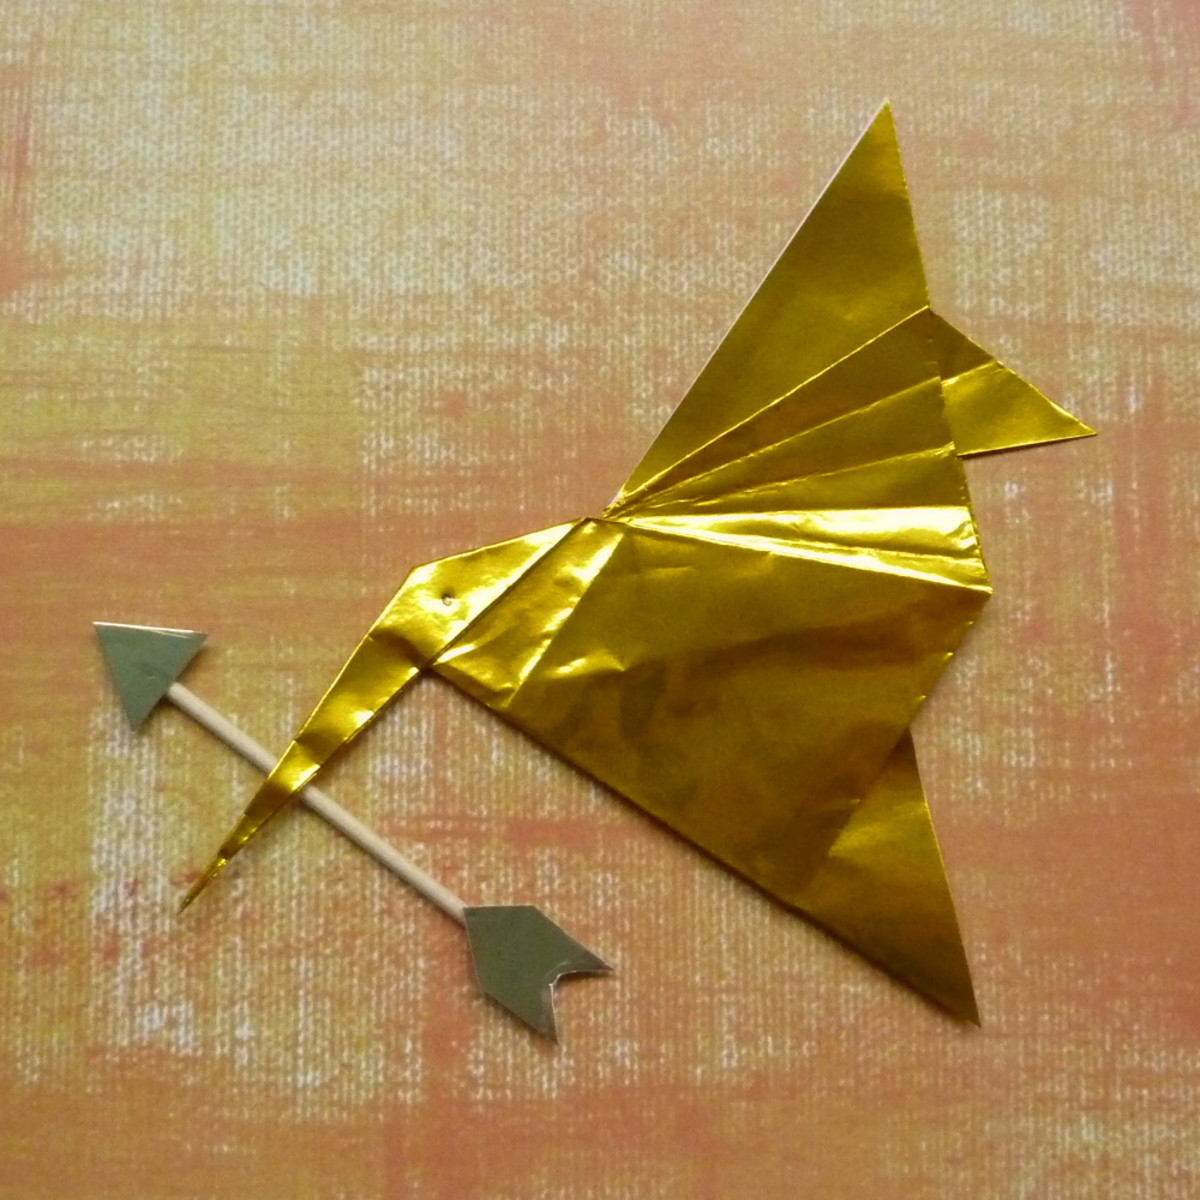 Hunger games origami paper folded projects resource page